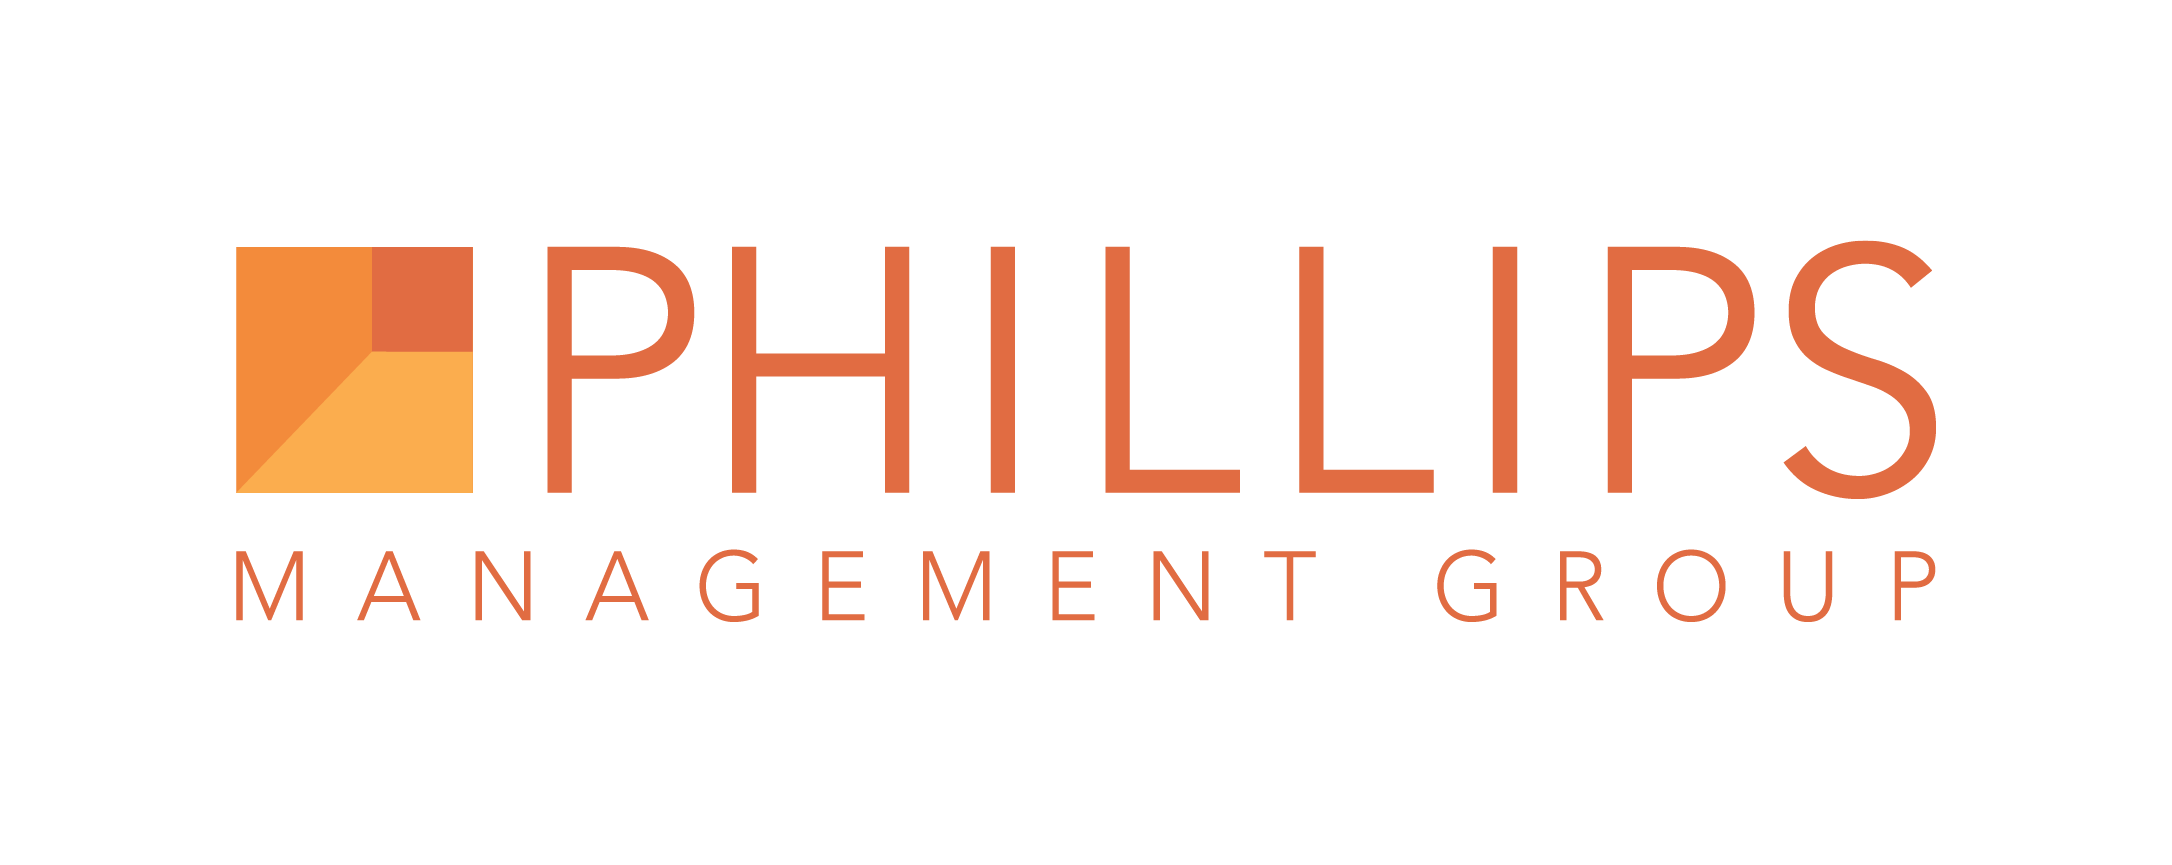 Phillips Management Group